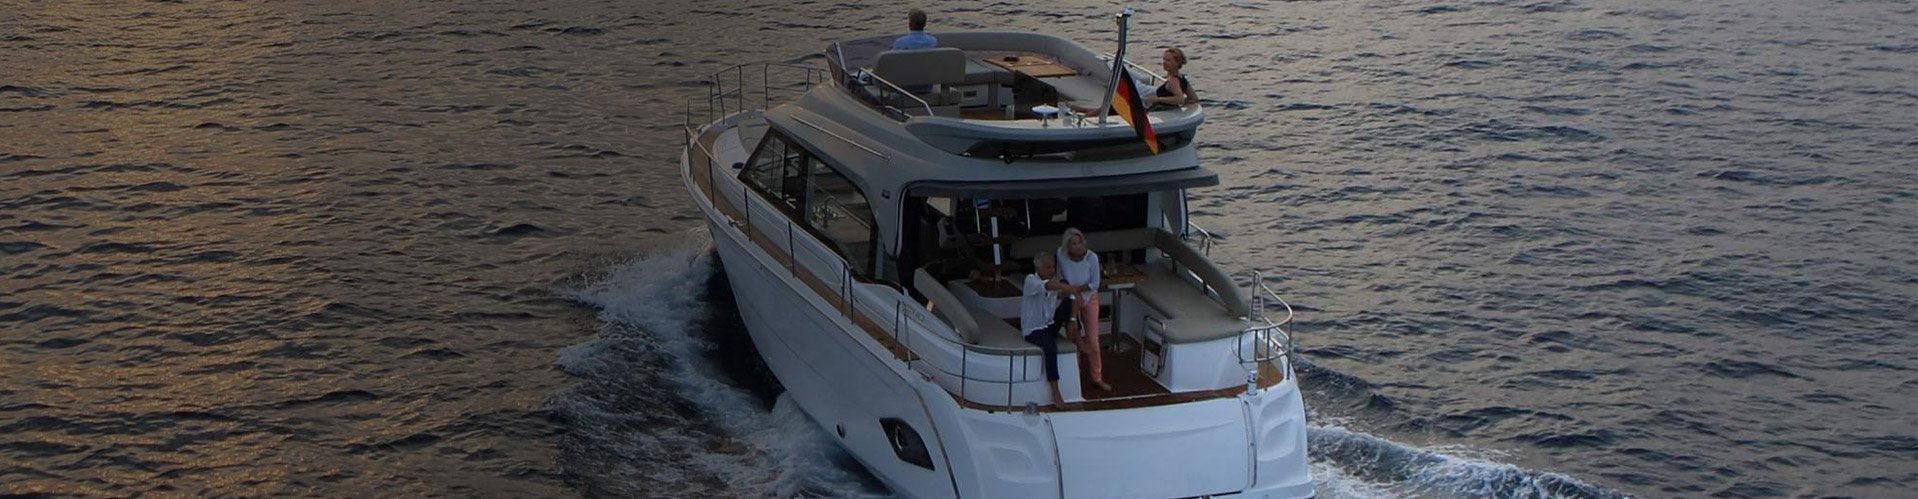 Bavaria Sport, Elan Power, Jeanneau Prestige, Adriana, Sealine, Sunseeker and more...